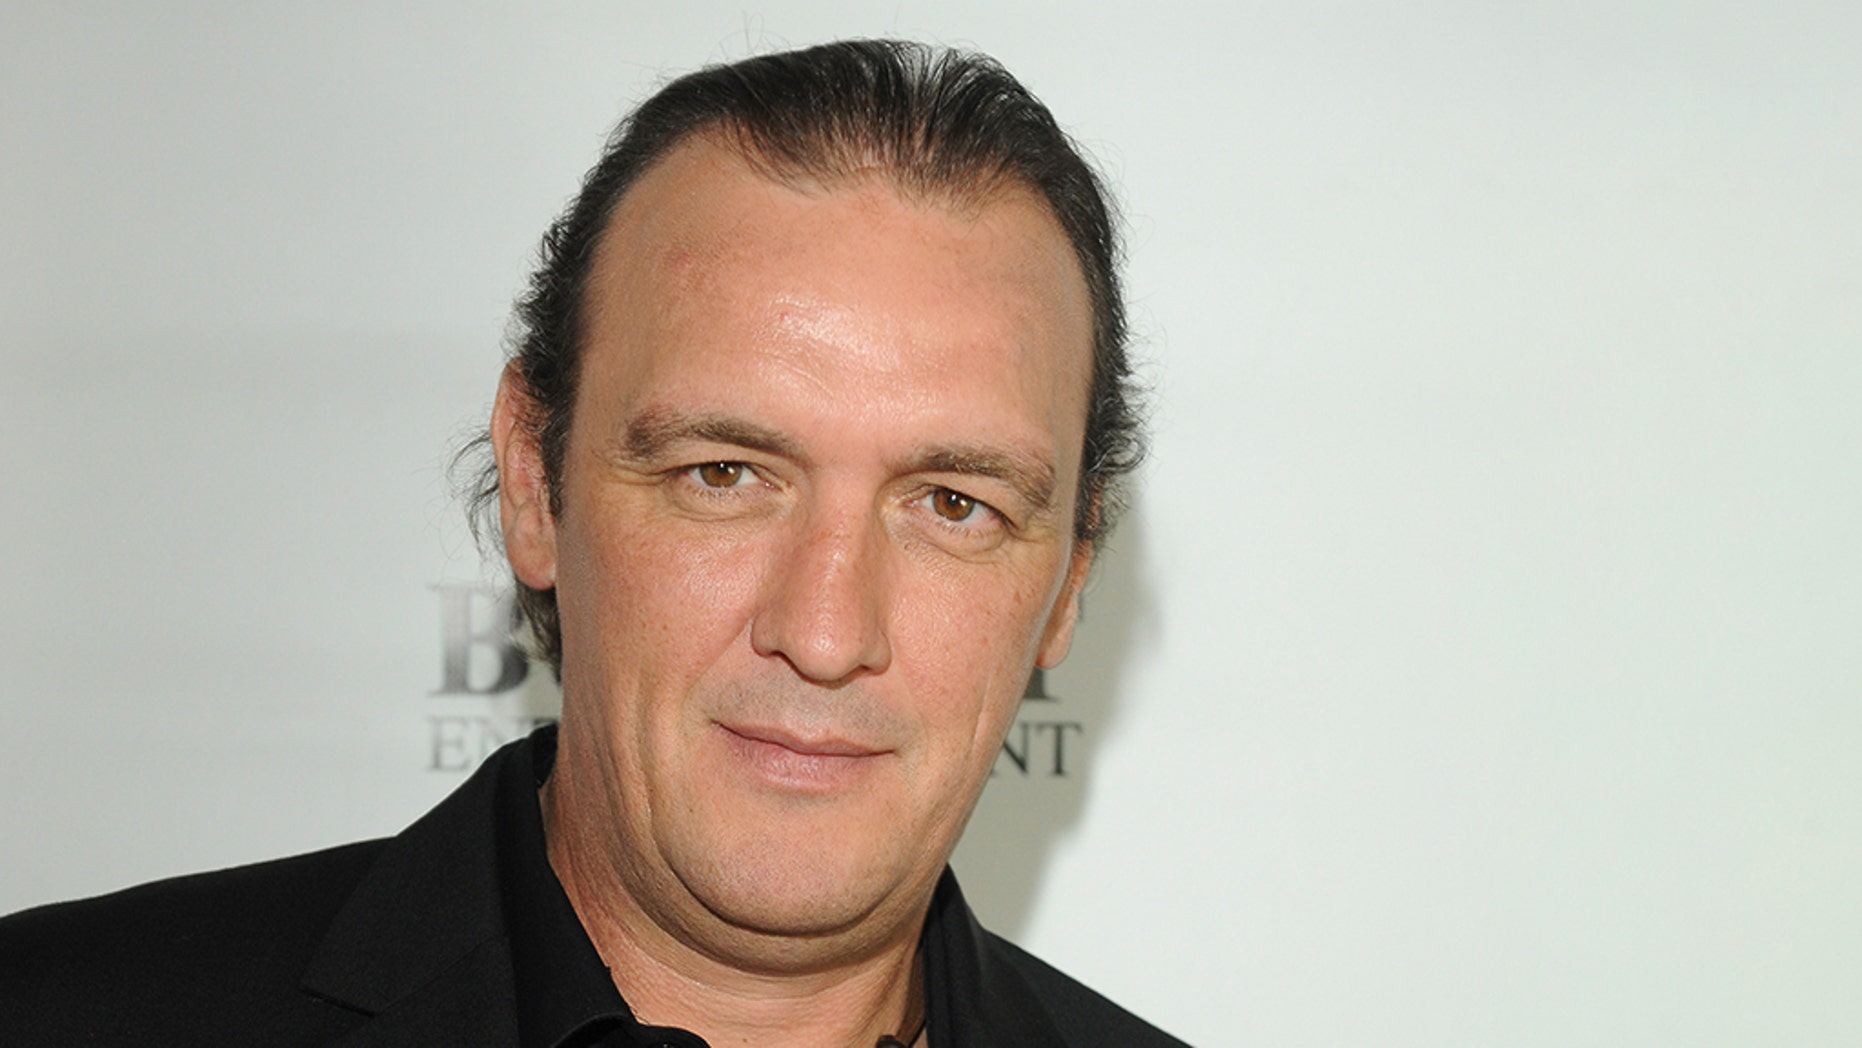 Sons of Anarchy' actor Alan O'Neill dies at 47 | Fox News